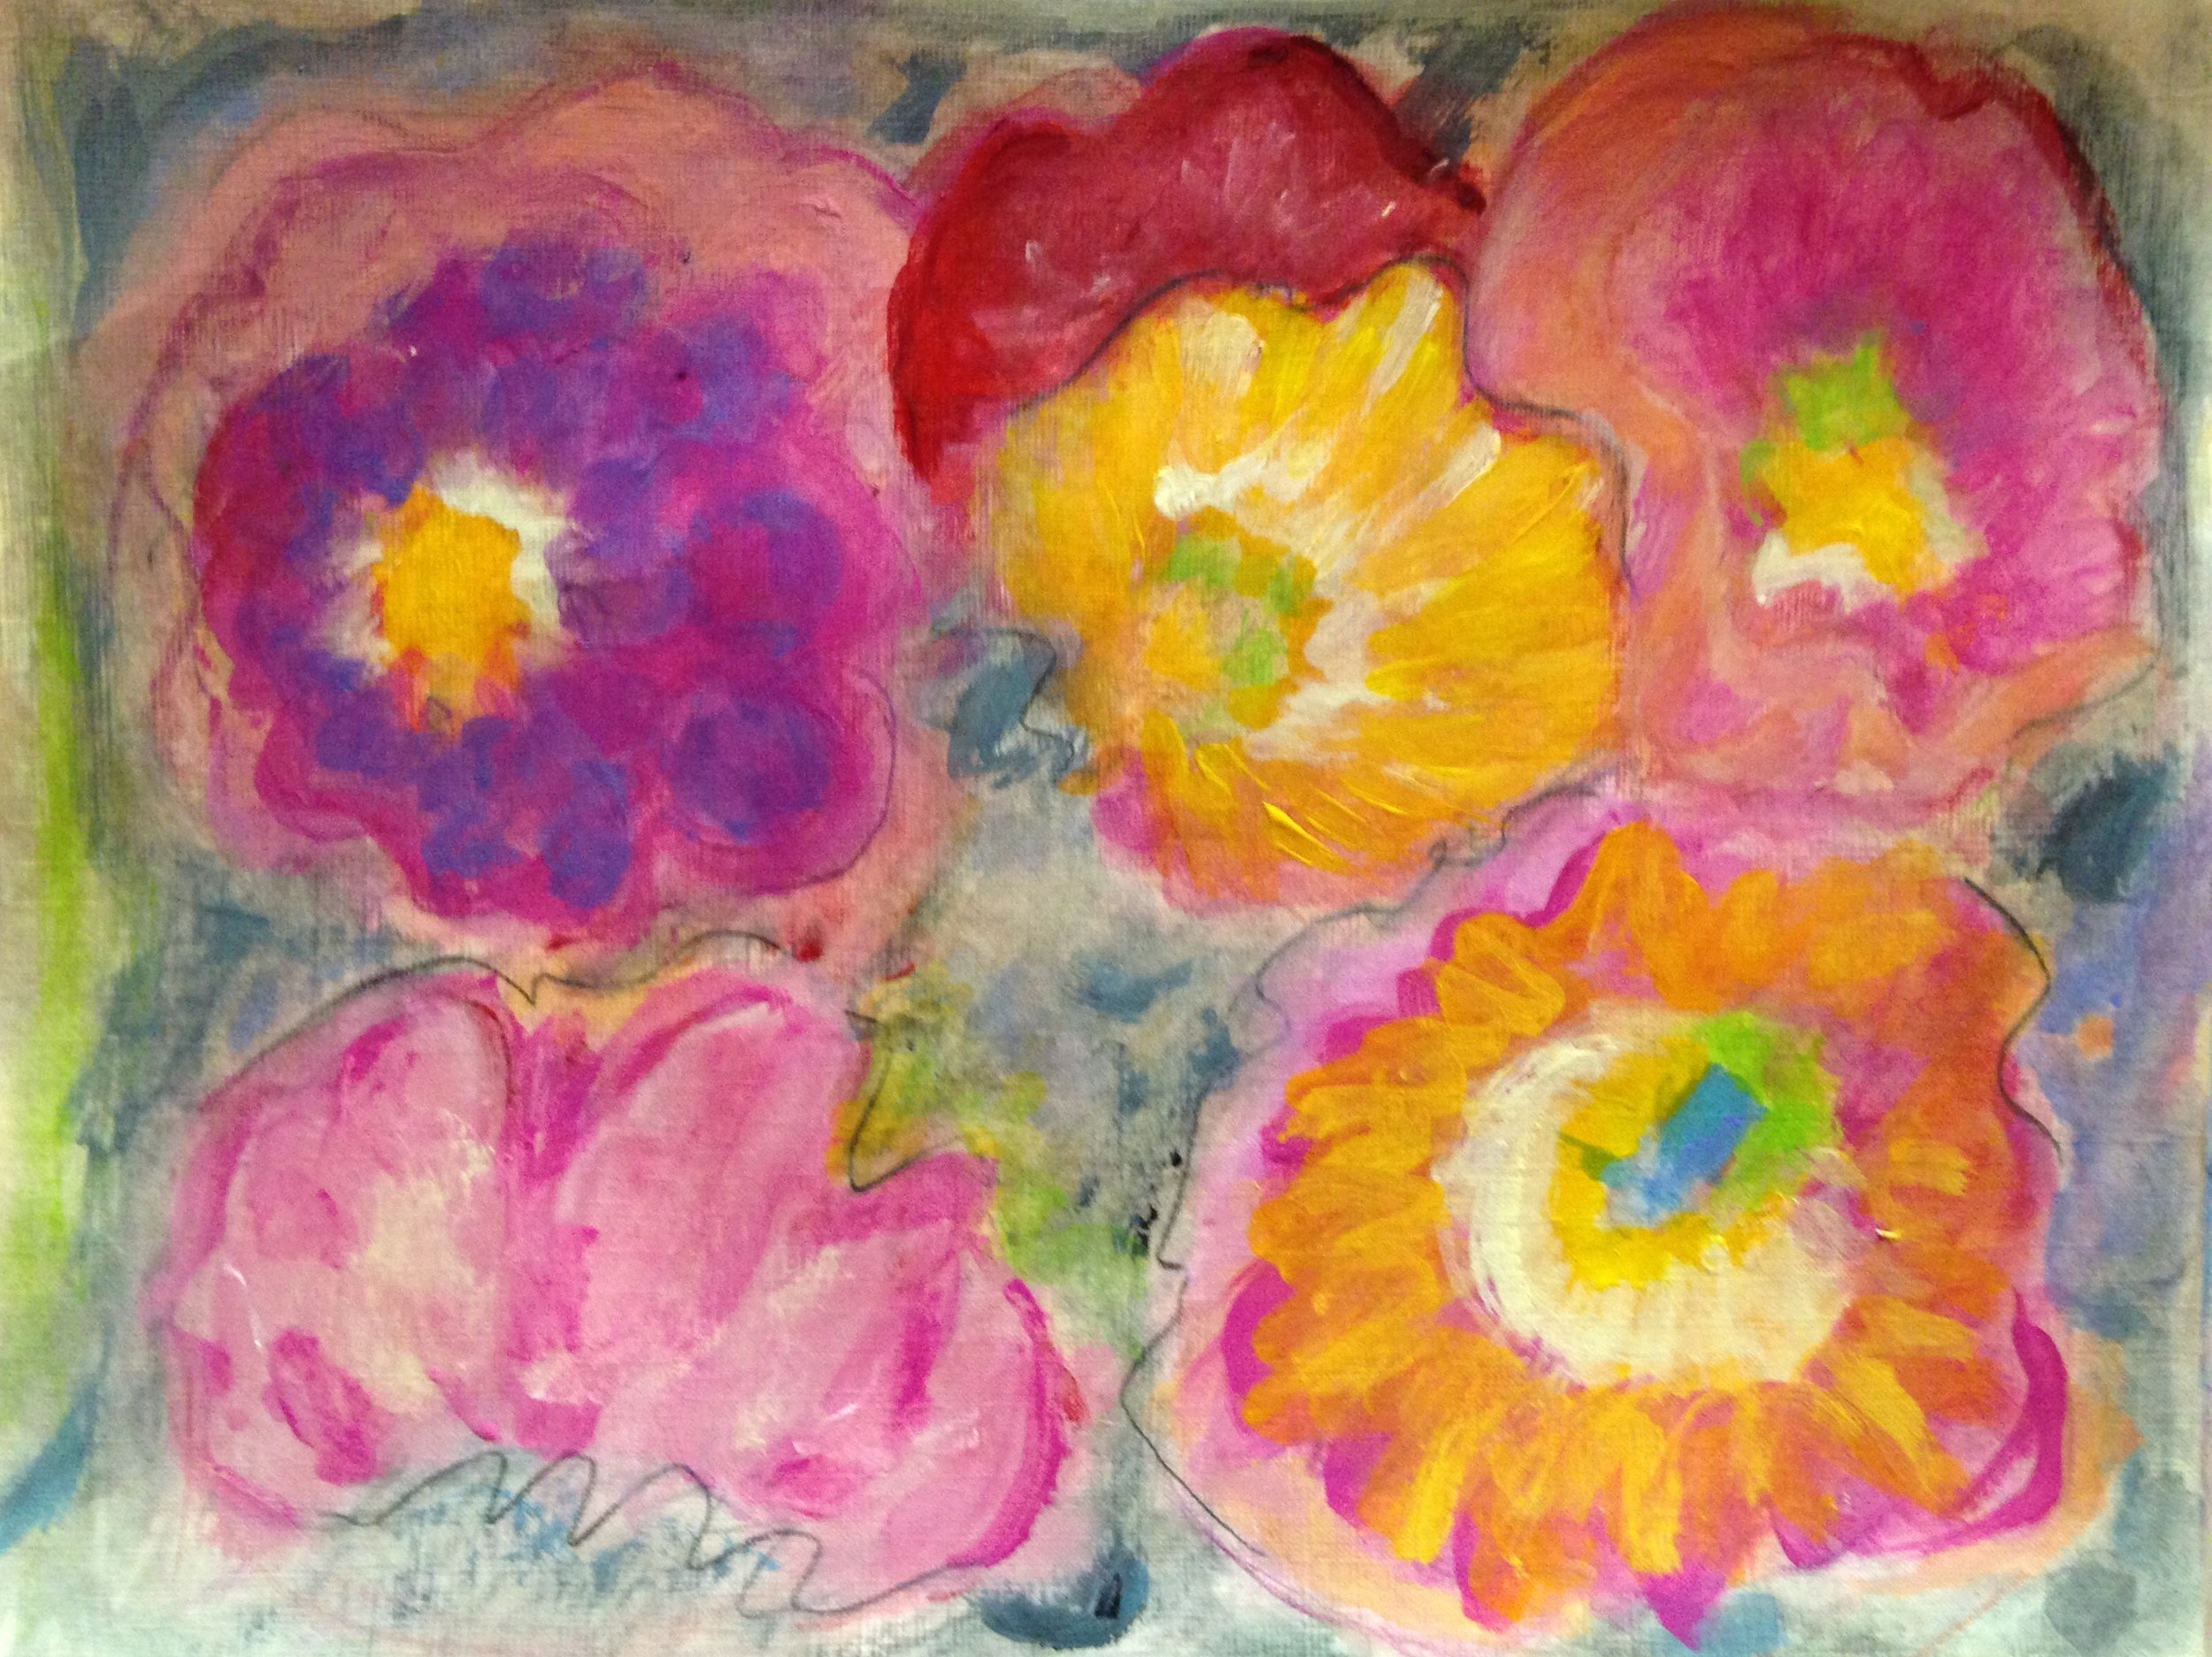 """""""Spring bouquet"""" 12"""" x 9"""" acrylic and water color on linen paper"""